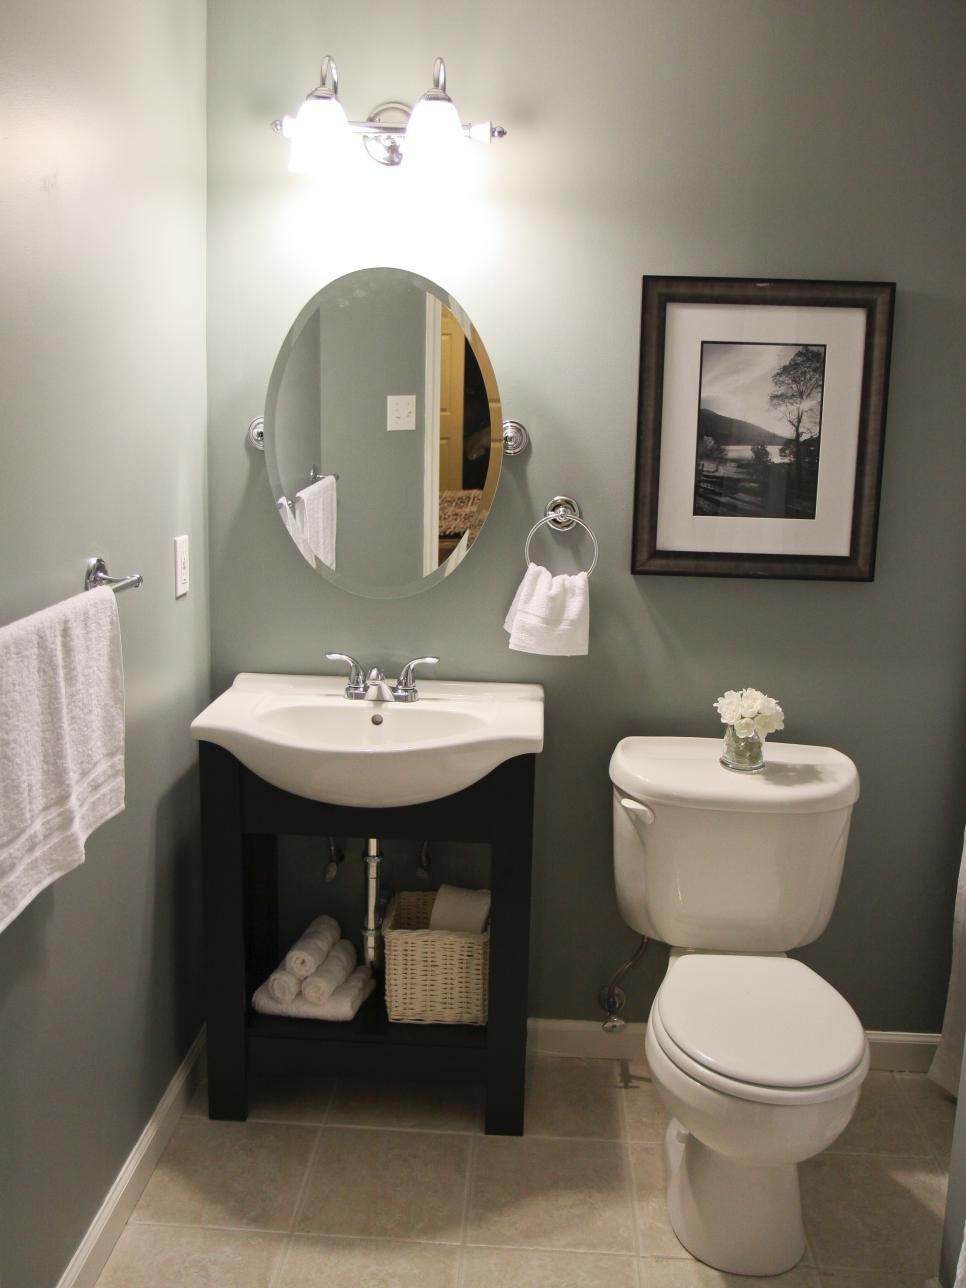 Budget Bathroom Remodels Pinterest Vanities Hardware And - How to remodel an old bathroom